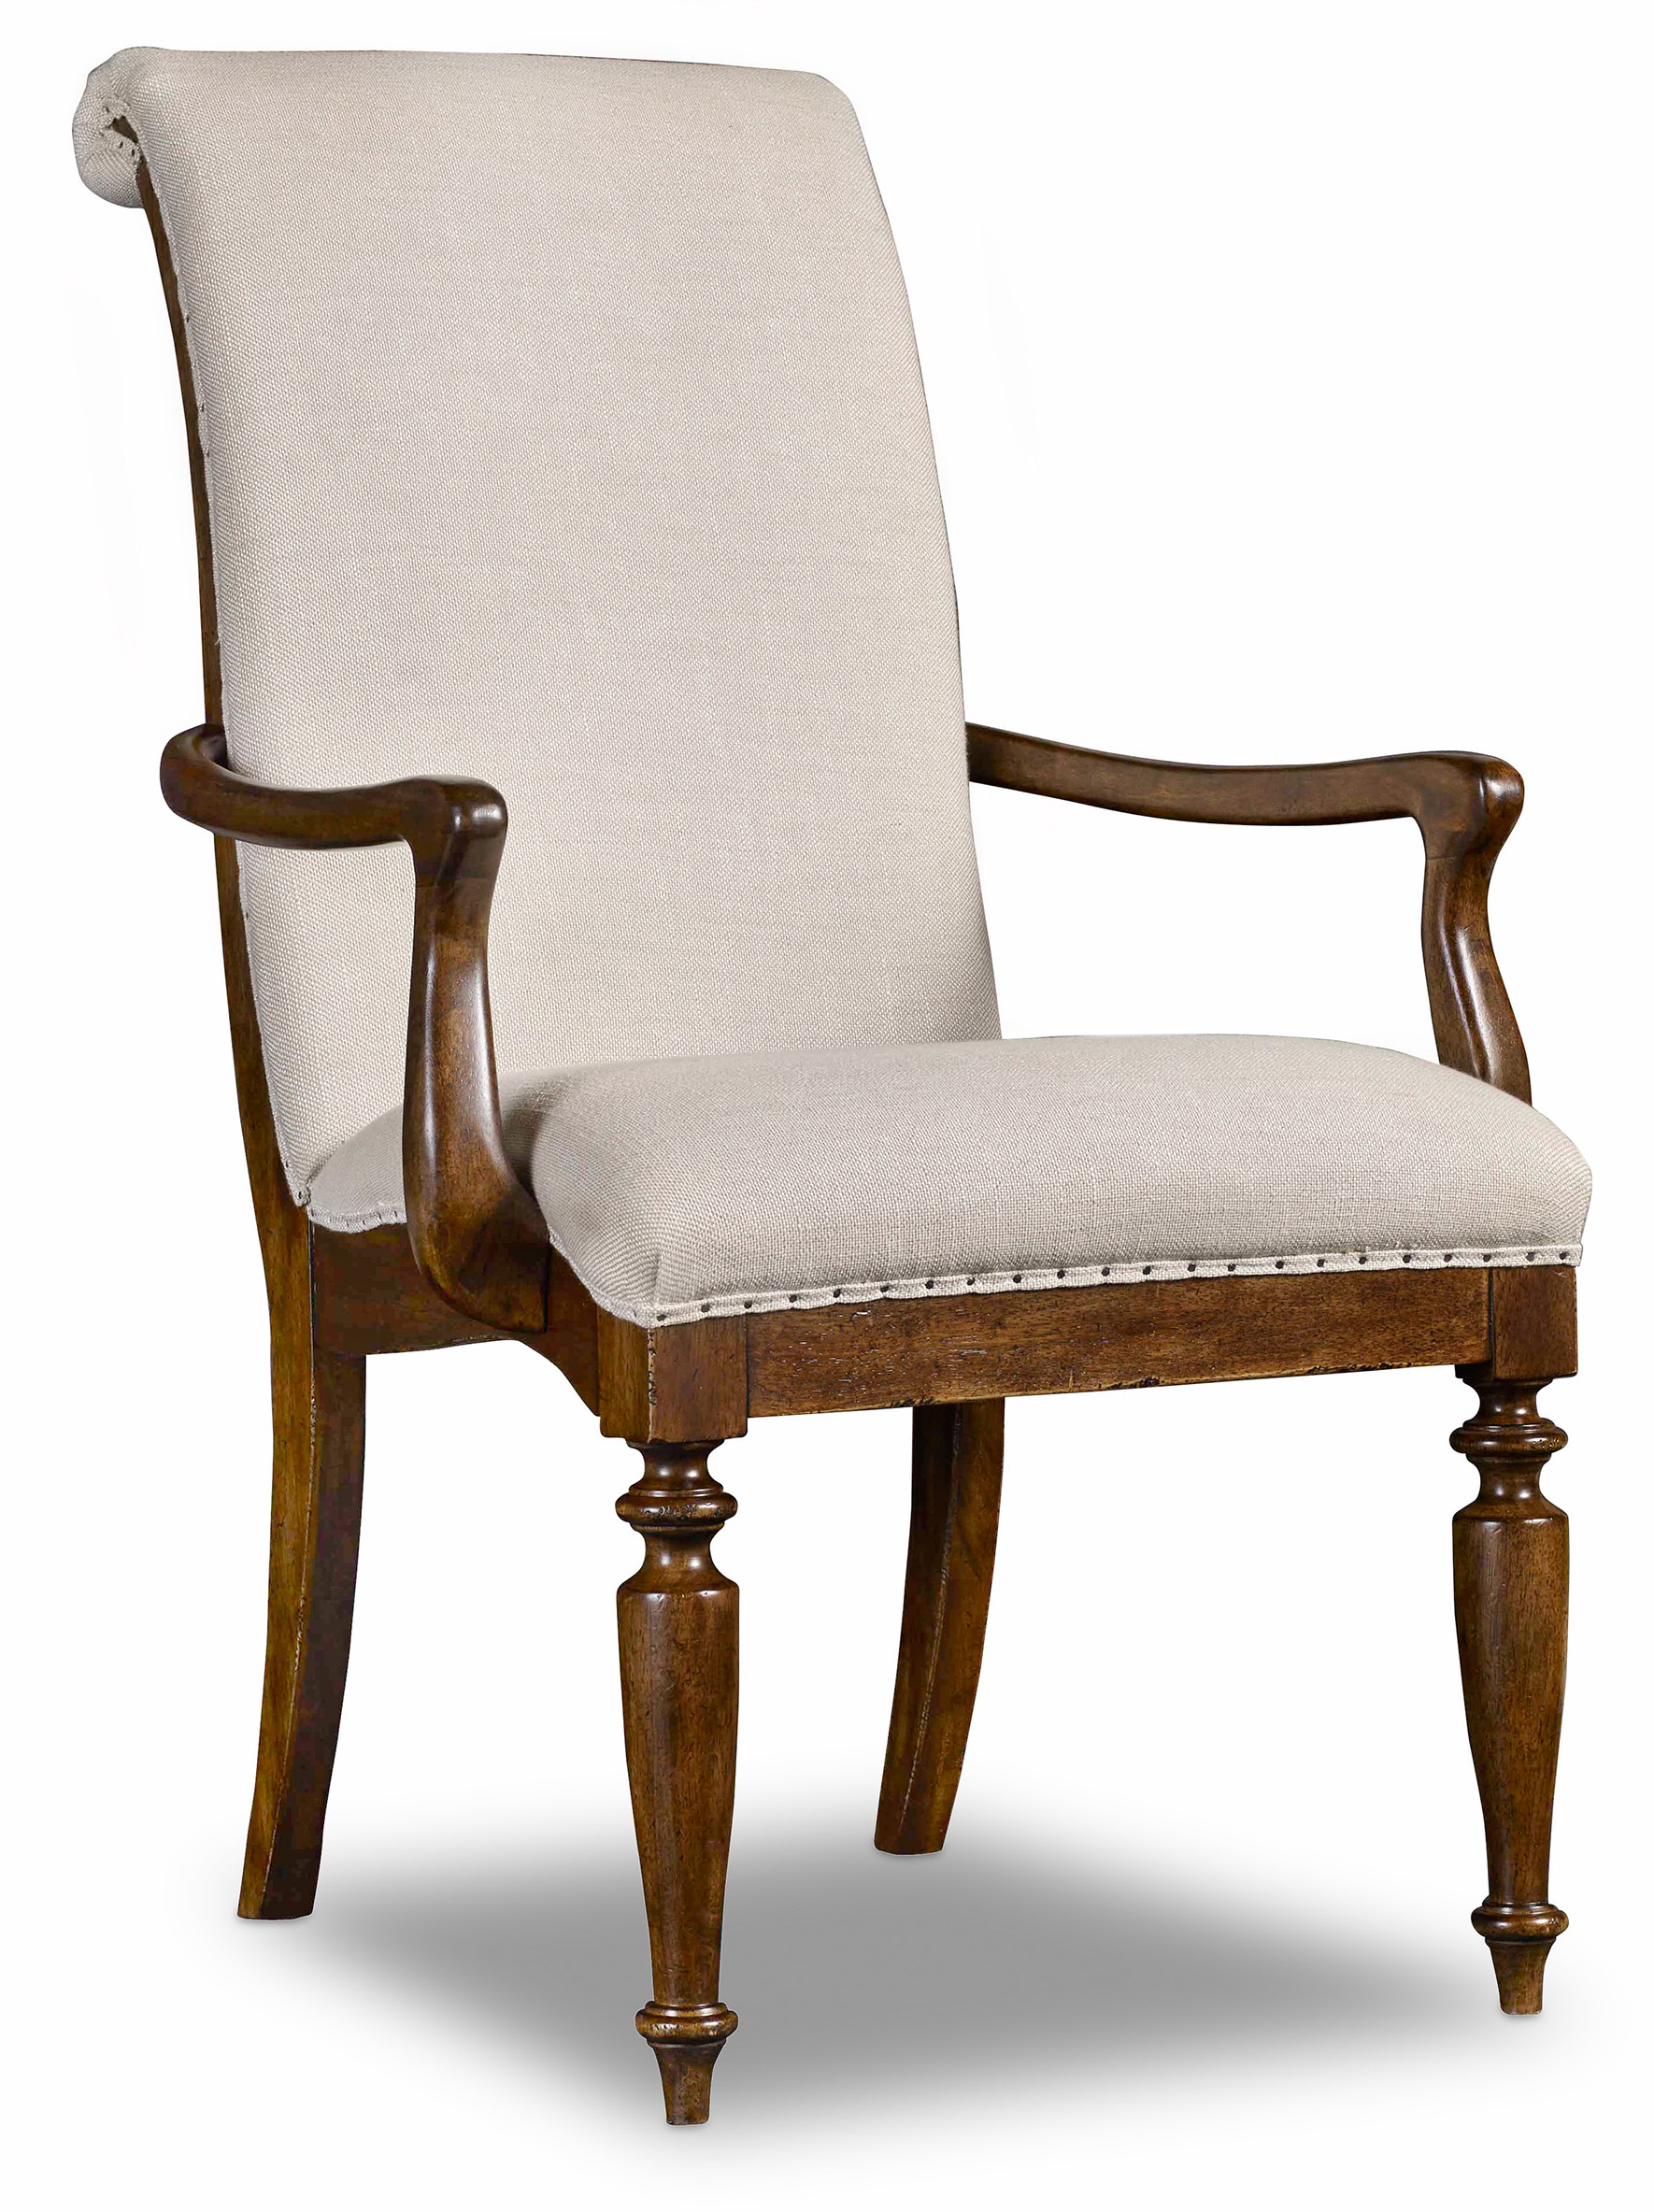 Hooker Furniture Archivist Upholstered Arm Chair with